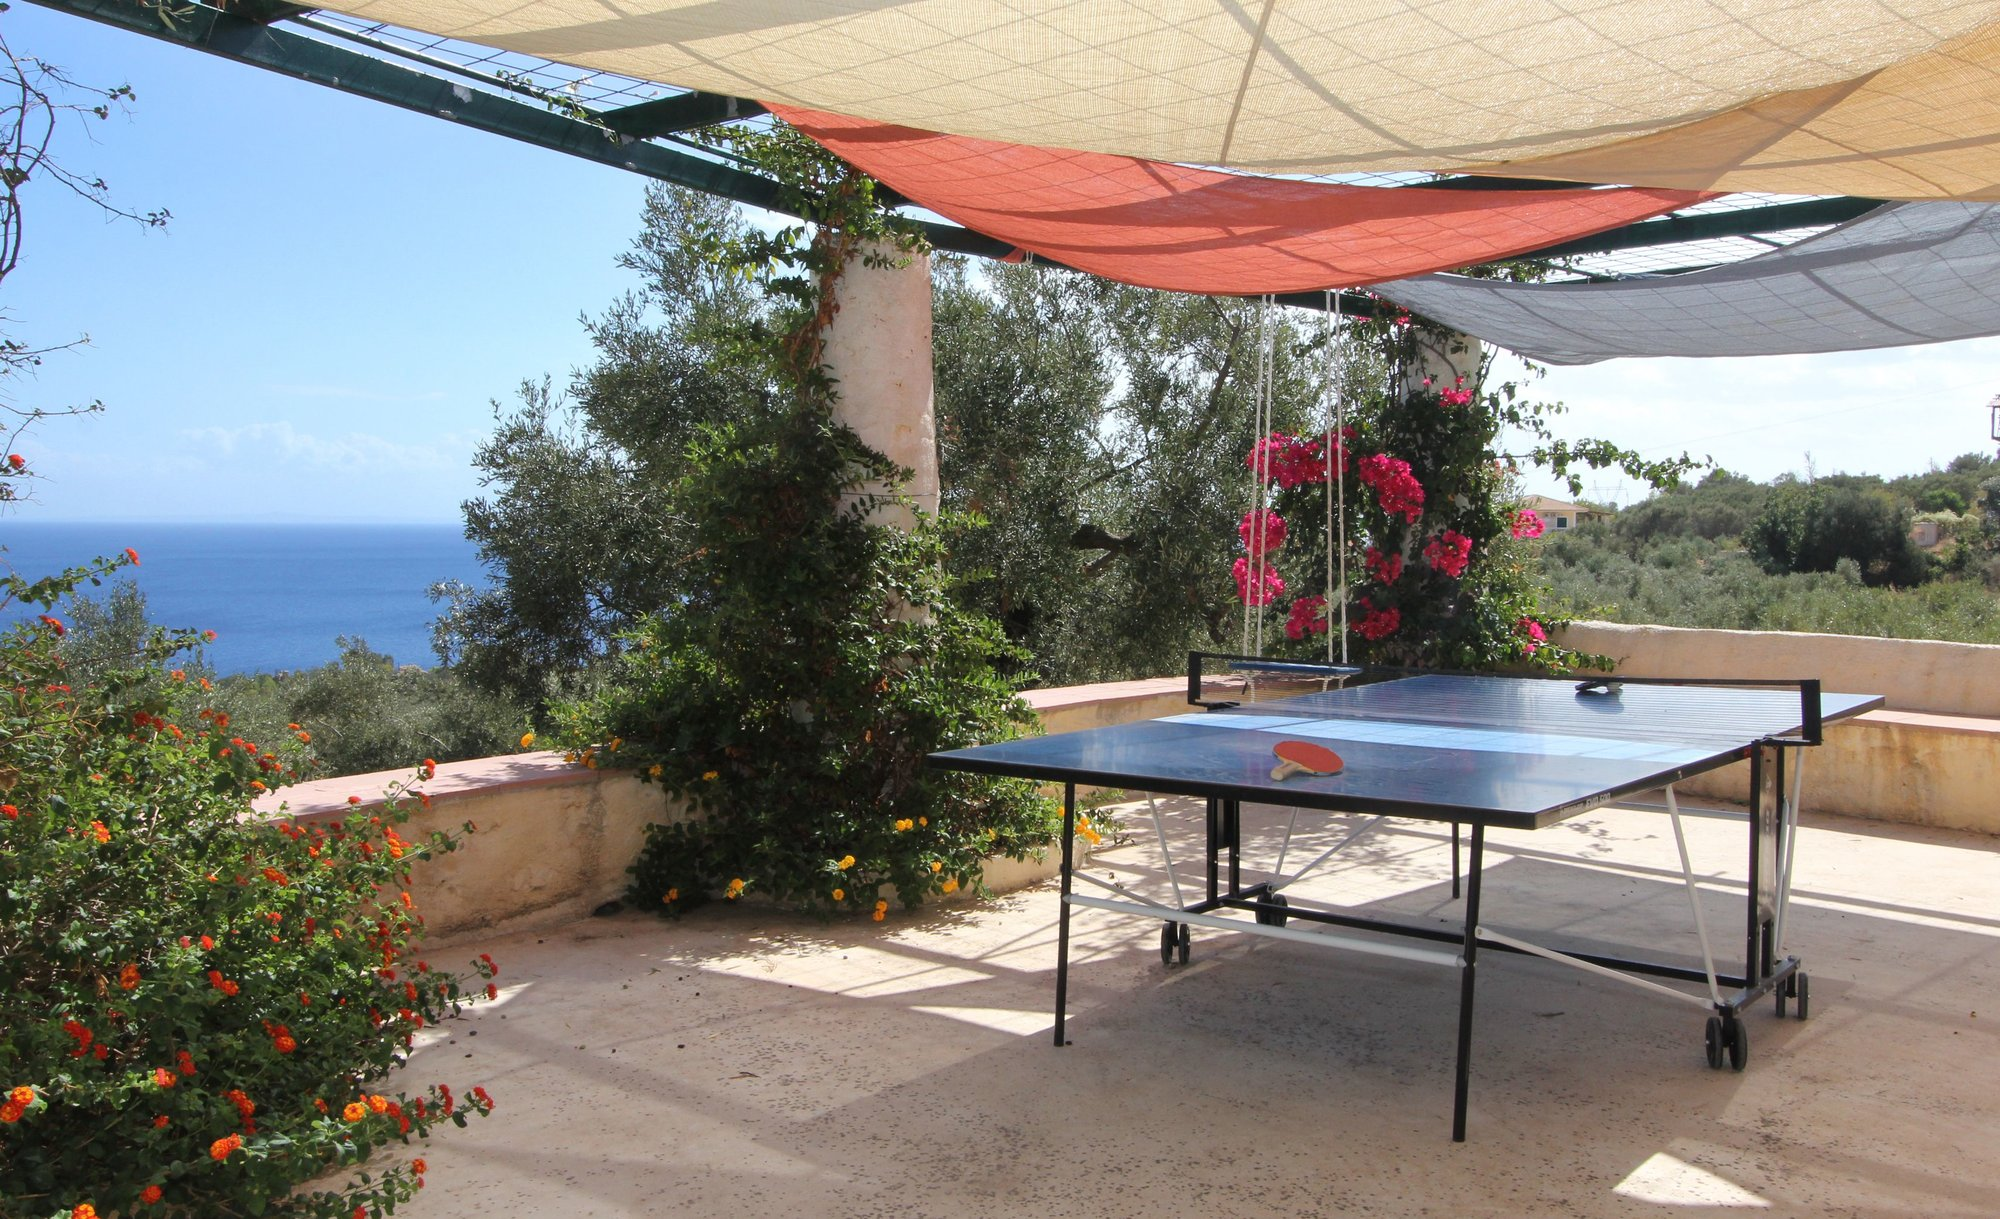 Table tennis terrace